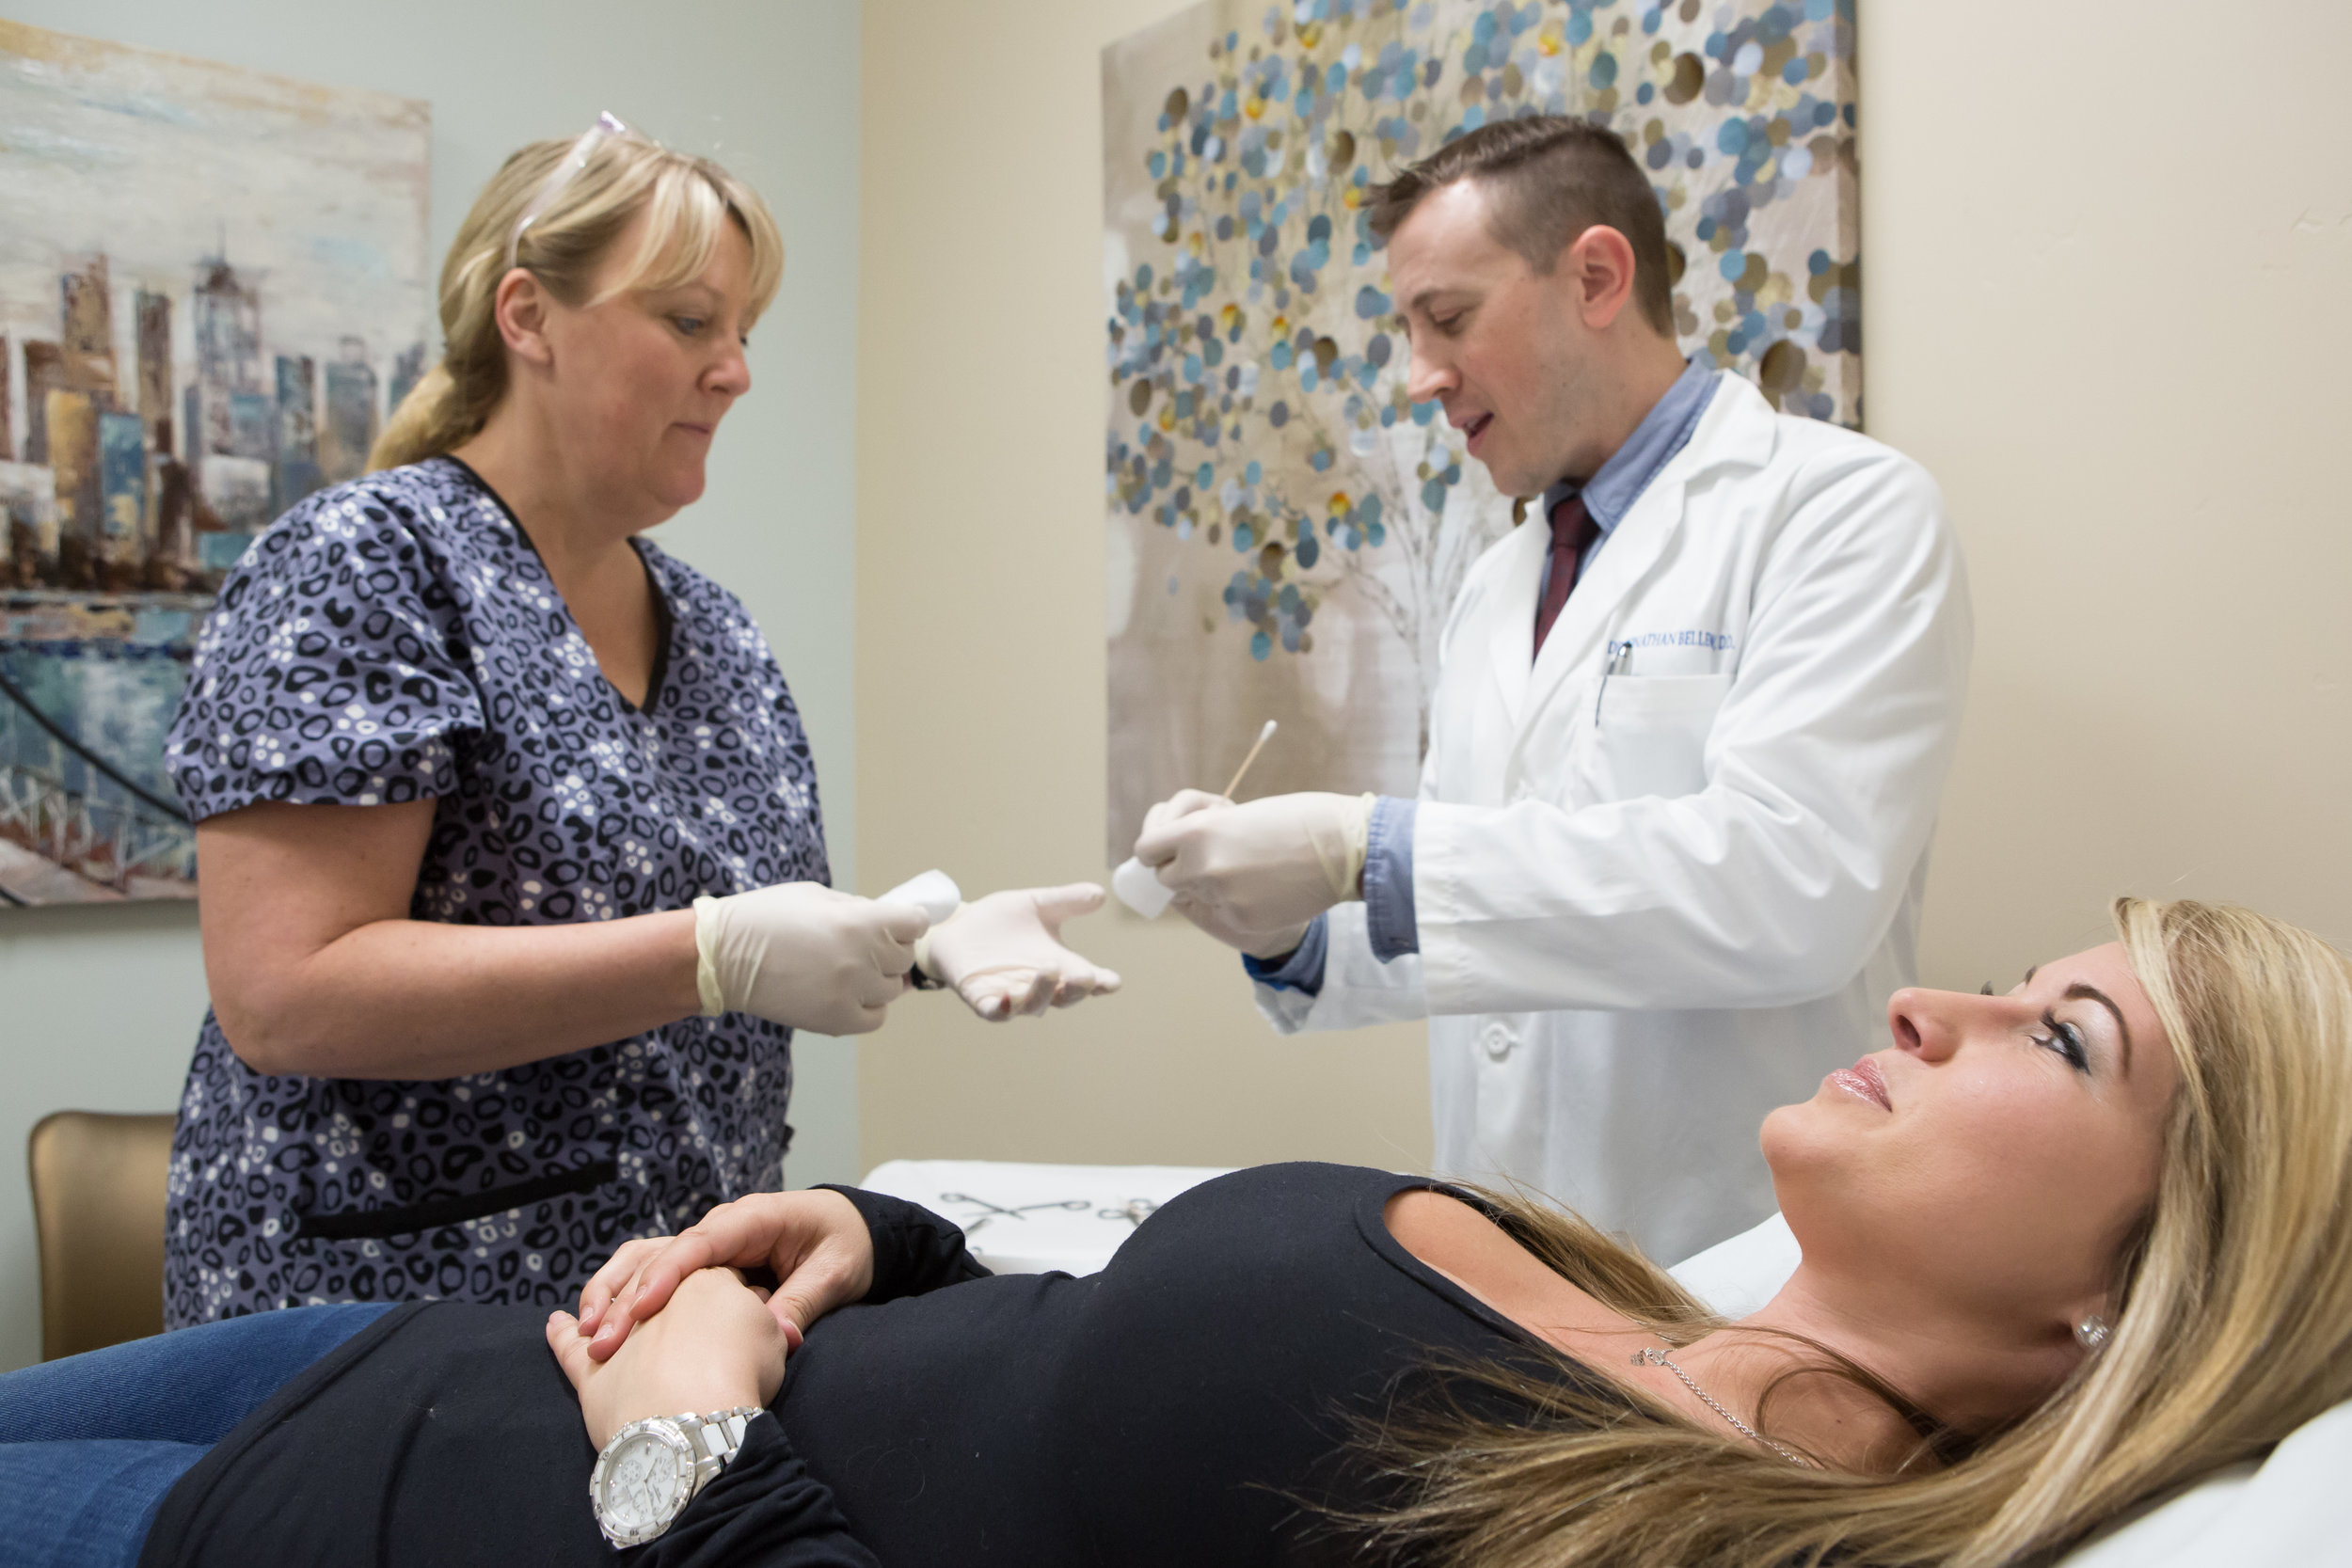 Kelly Beck and Dr. Jonathan Bellew are part of the team of practitioners delivering excellent patient care to patients at Mohave Skin and Cancer